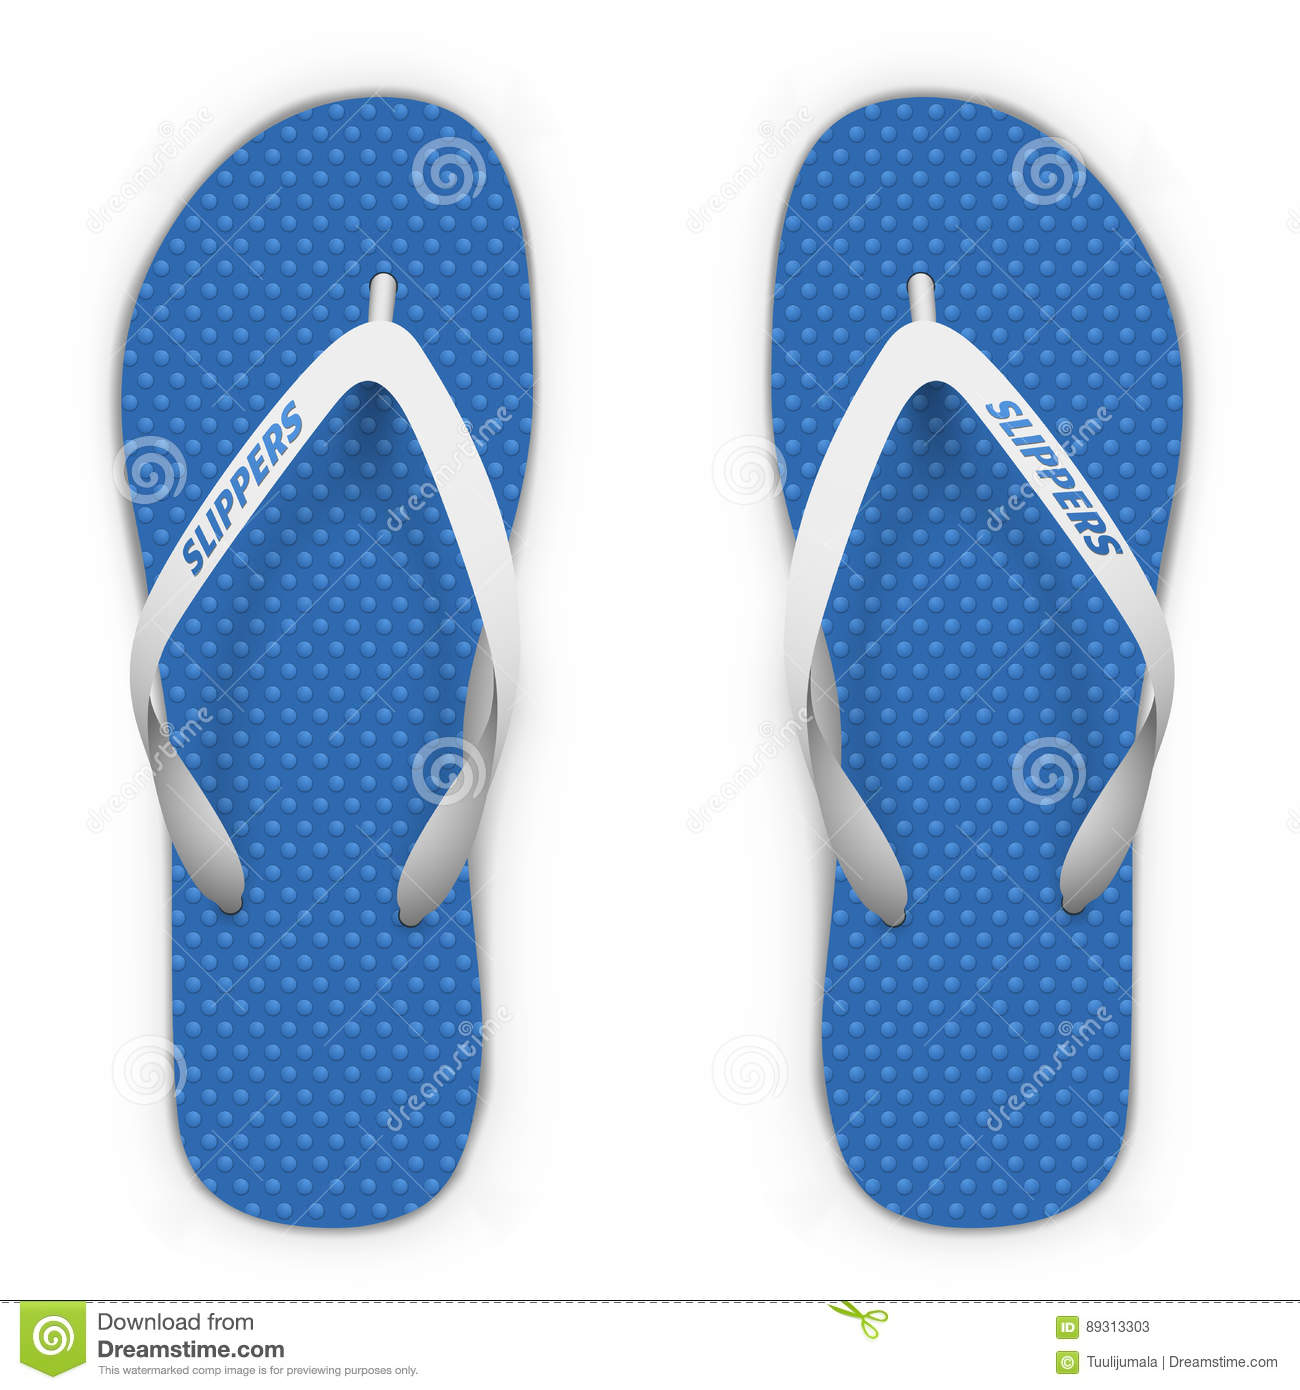 907afd9e5d956c Blue and white beach slippers isolated on white background. Flip flops top  view vector template.